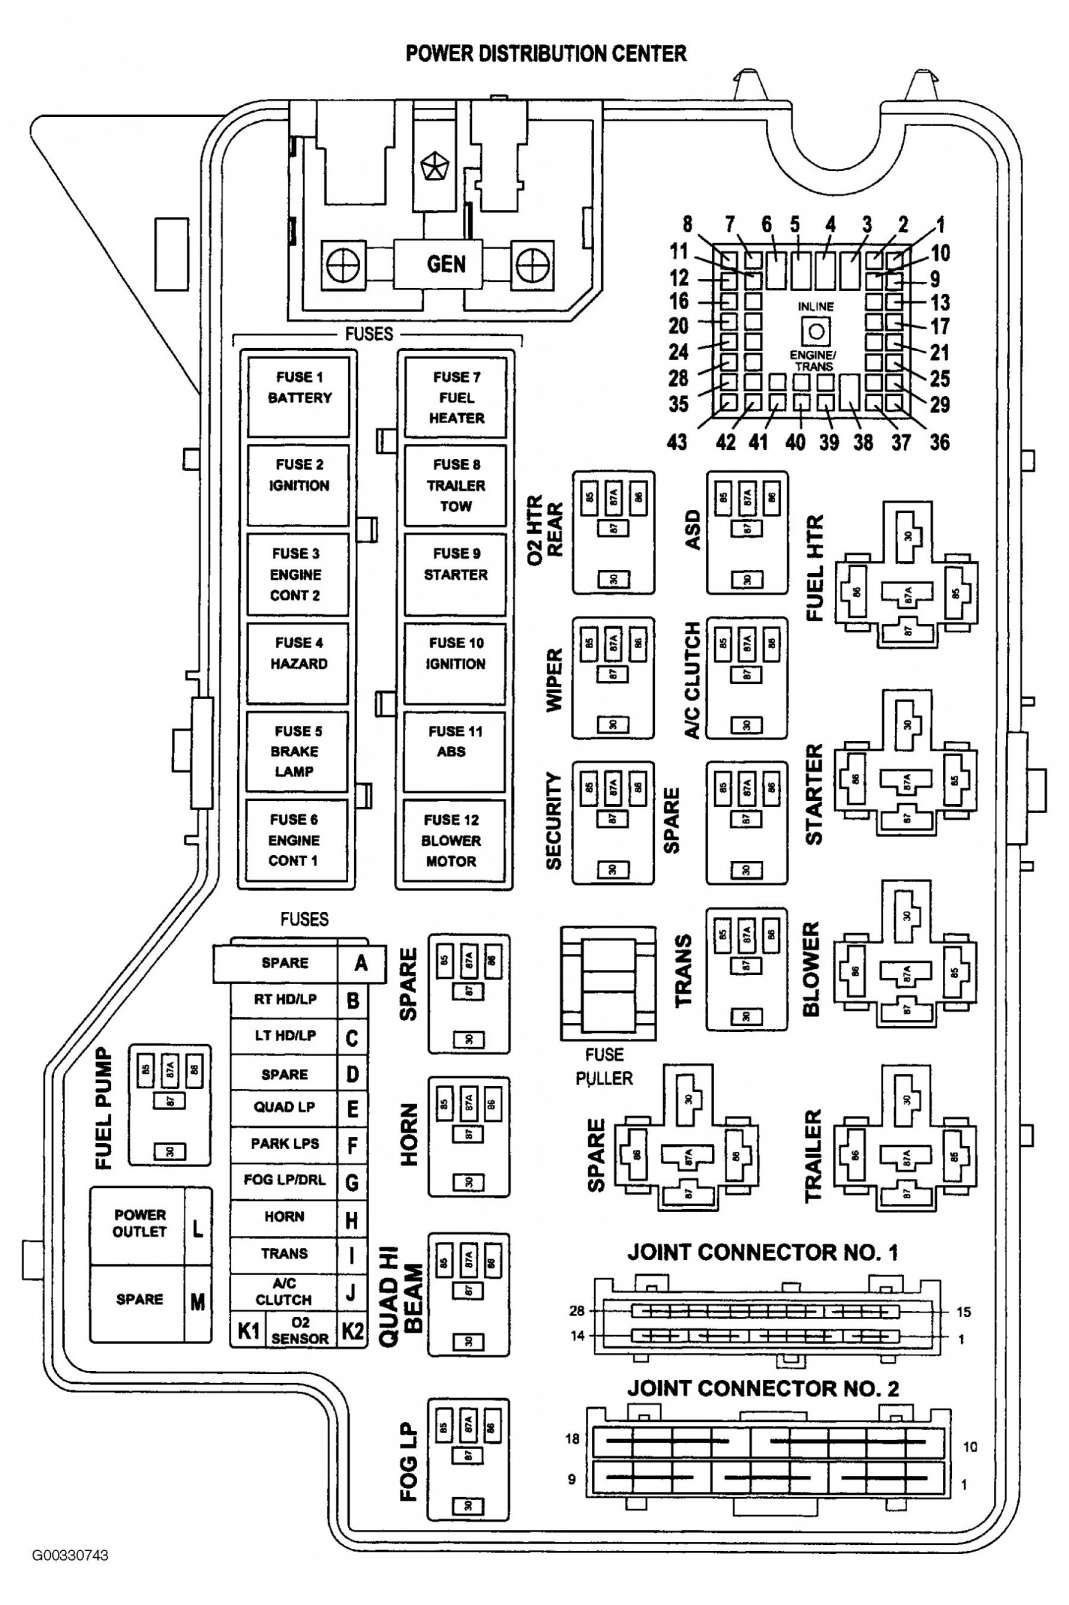 17+ 2002 Dodge Ram Truck Fuse Box Diagram - Truck Diagram - Wiringg.net in  2020 | Dodge ram 1500, Dodge trucks ram, Dodge ramPinterest